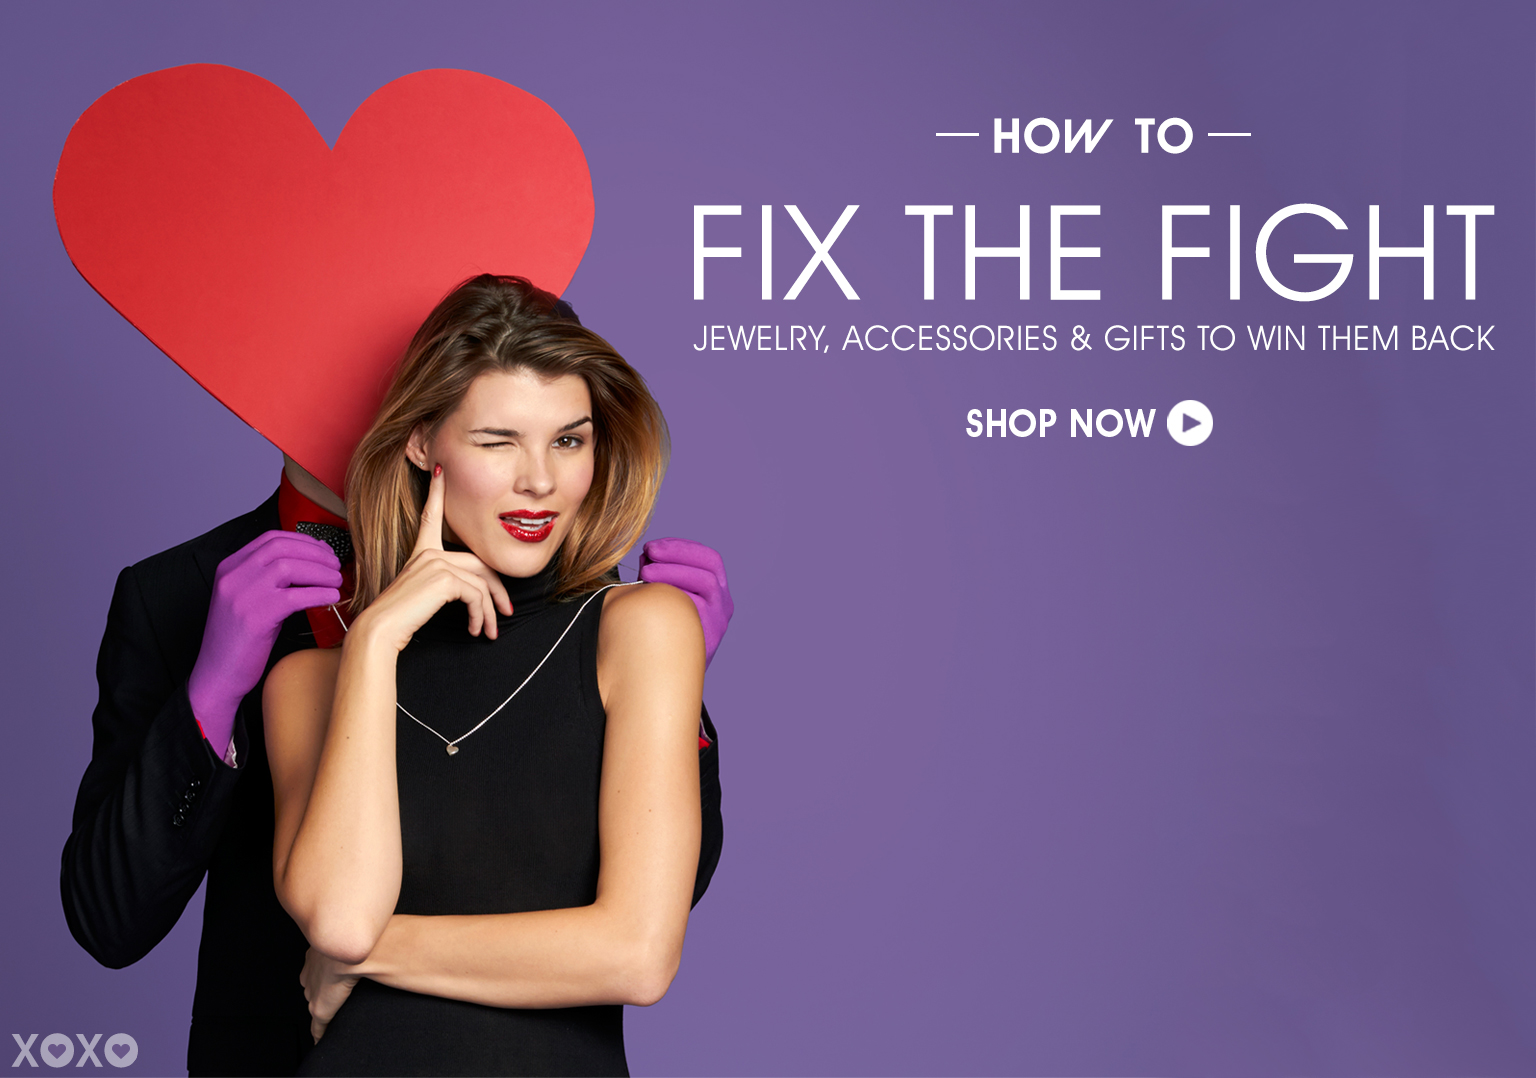 How To Fix The Fight. Shop Jewelry, Accessories & Gifts To Win Them Back